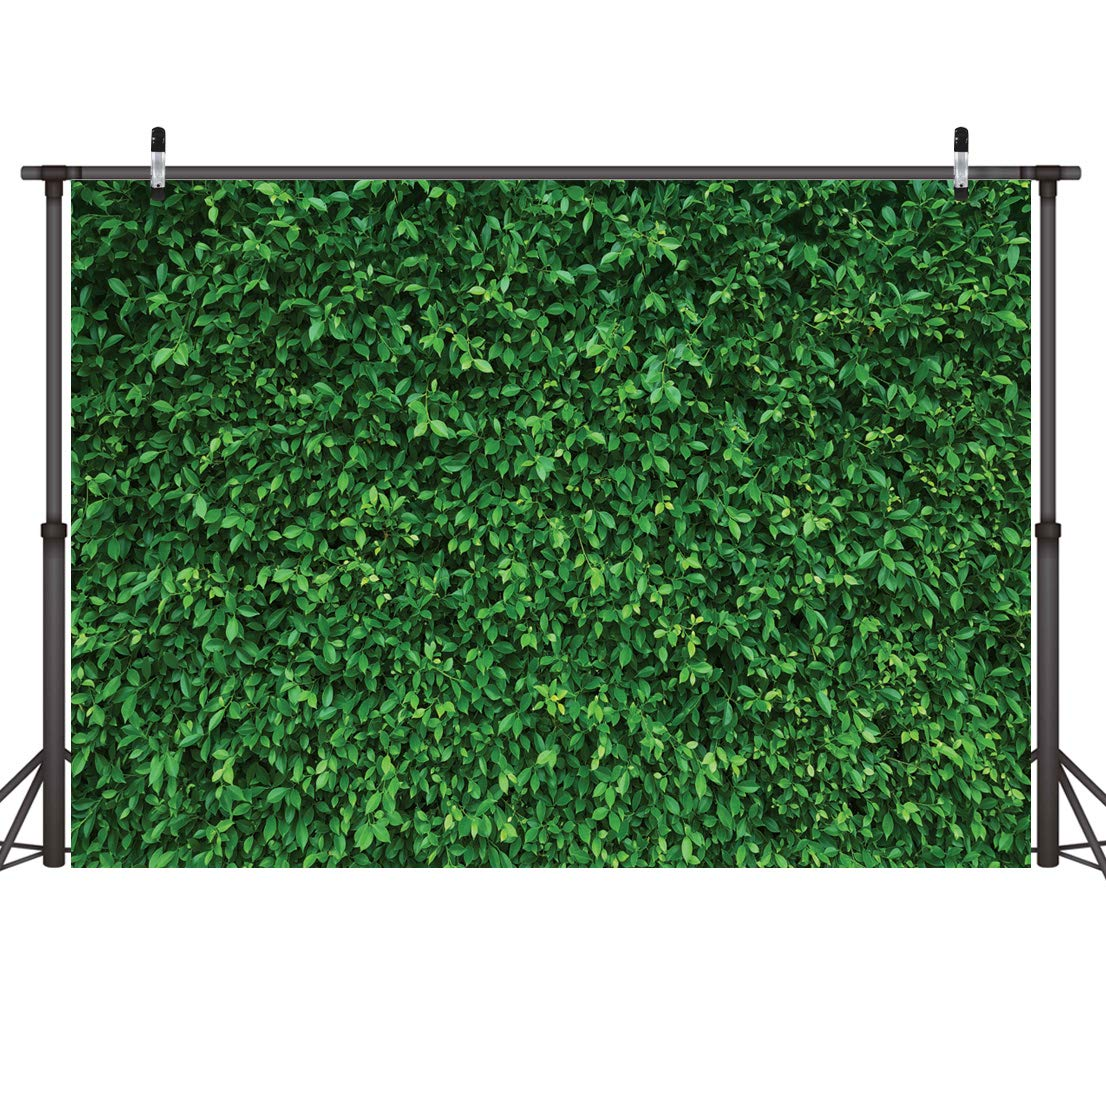 LYWYGG 7x5FT Green Leaves Photography Backdrops Vinyl Nature Backdrop Birthday Background for Birthday Party Seamless Photo Booth Prop Backdrop CP-87